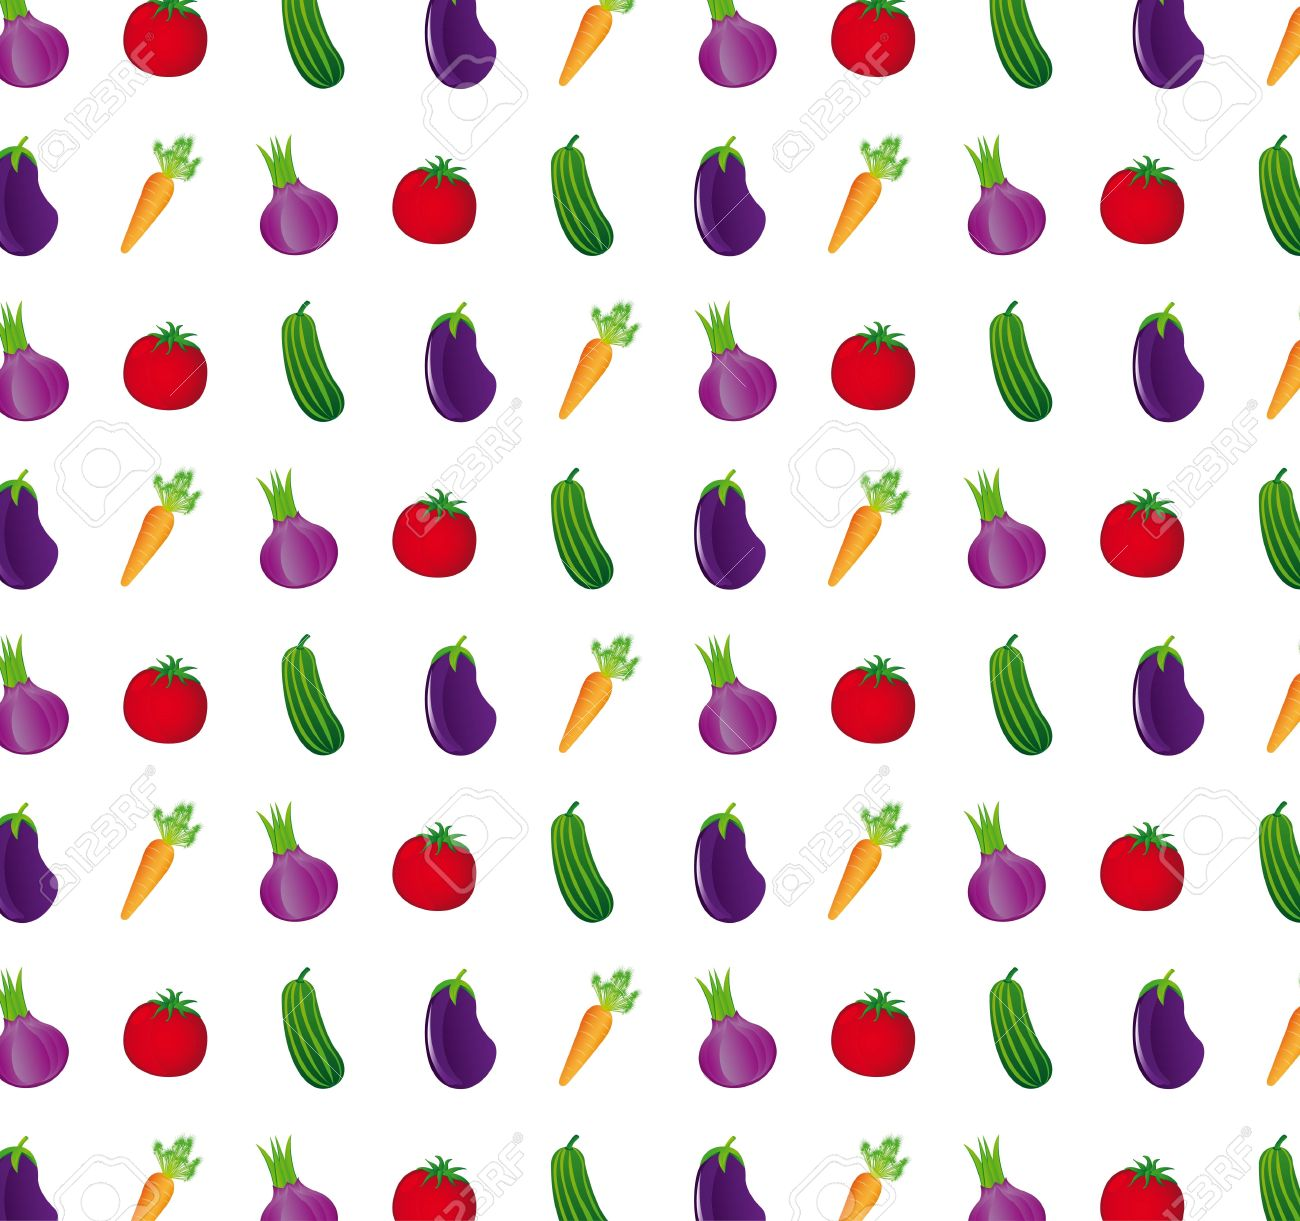 cute vegetables over white background. Stock Vector - 12948286